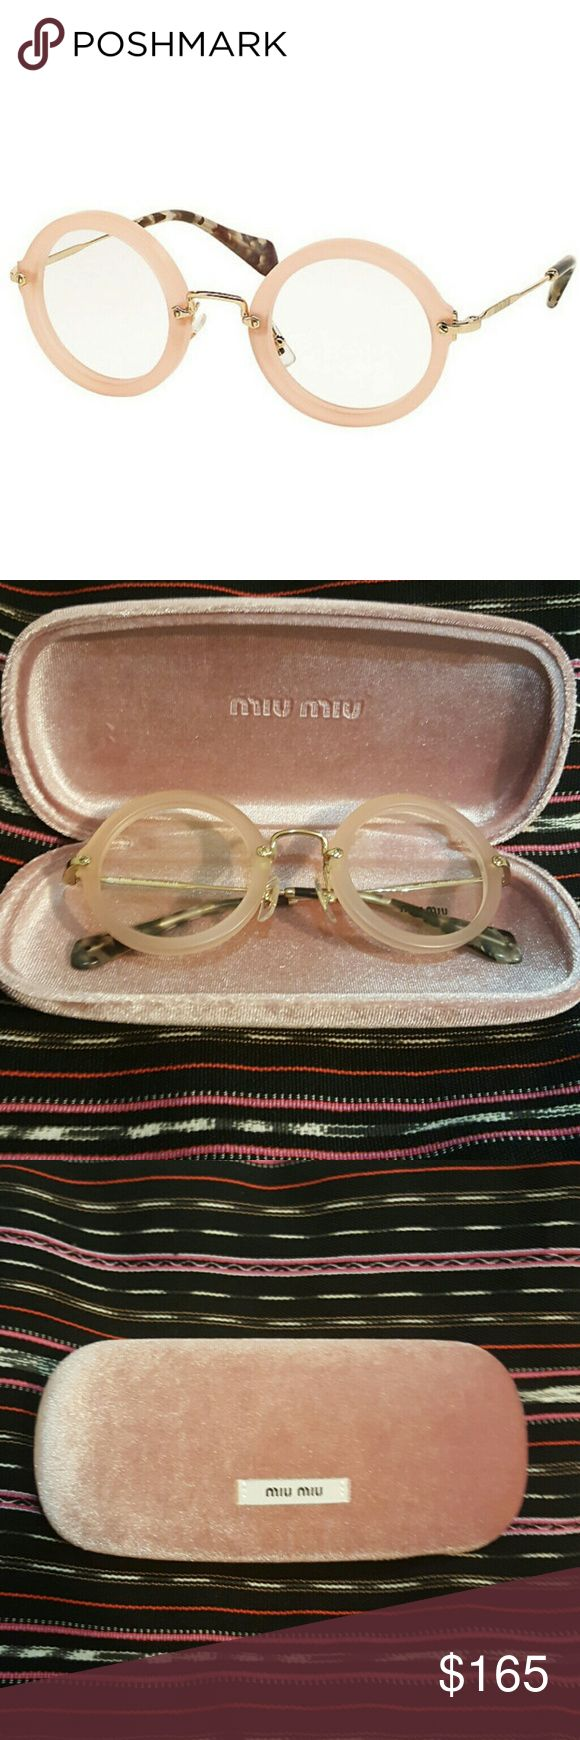 New Authentic Miu Miu MU 06NV Optical Glasses BRAND NEW Sand Opal Miu Miu by Prada Eyeglasses  These are for prescription but you can also buy sunglass lenses for them Includes box, case, eyeglasses cleaning cloth  Color: Pink/Gold/Tortoiseshell   Please ask questions if interested,  thank you!  :^) Miu Miu Accessories Glasses